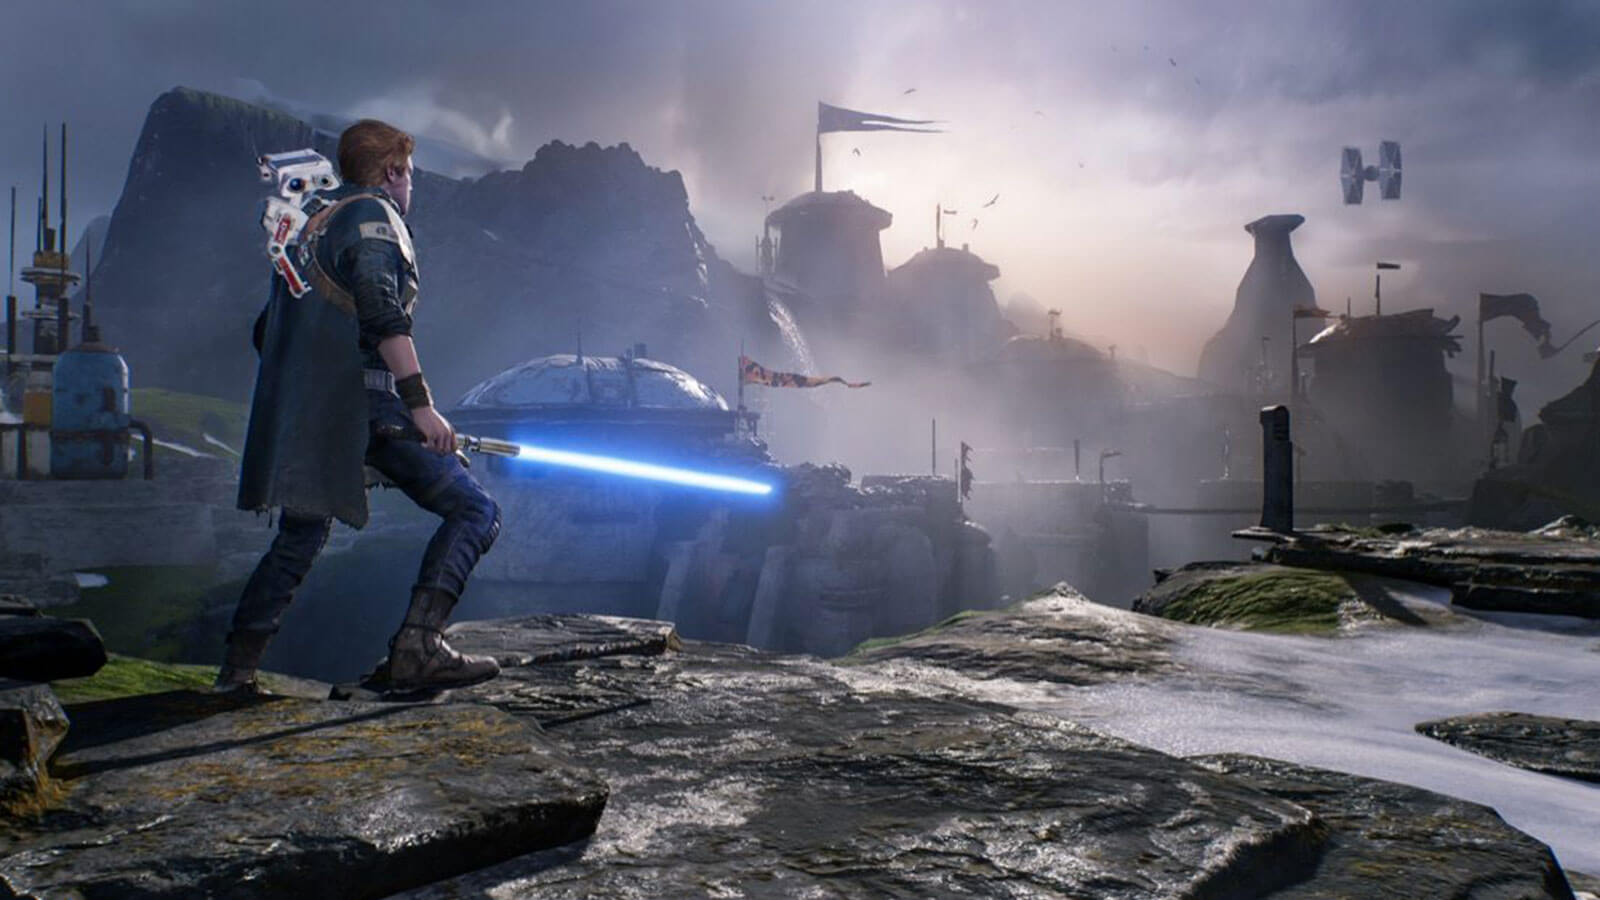 Star Wars Jedi: Fallen Order's hero, Cal Kestis, wields his lightsaber and looks out at a rocky landscape while a small droid rides on his back.